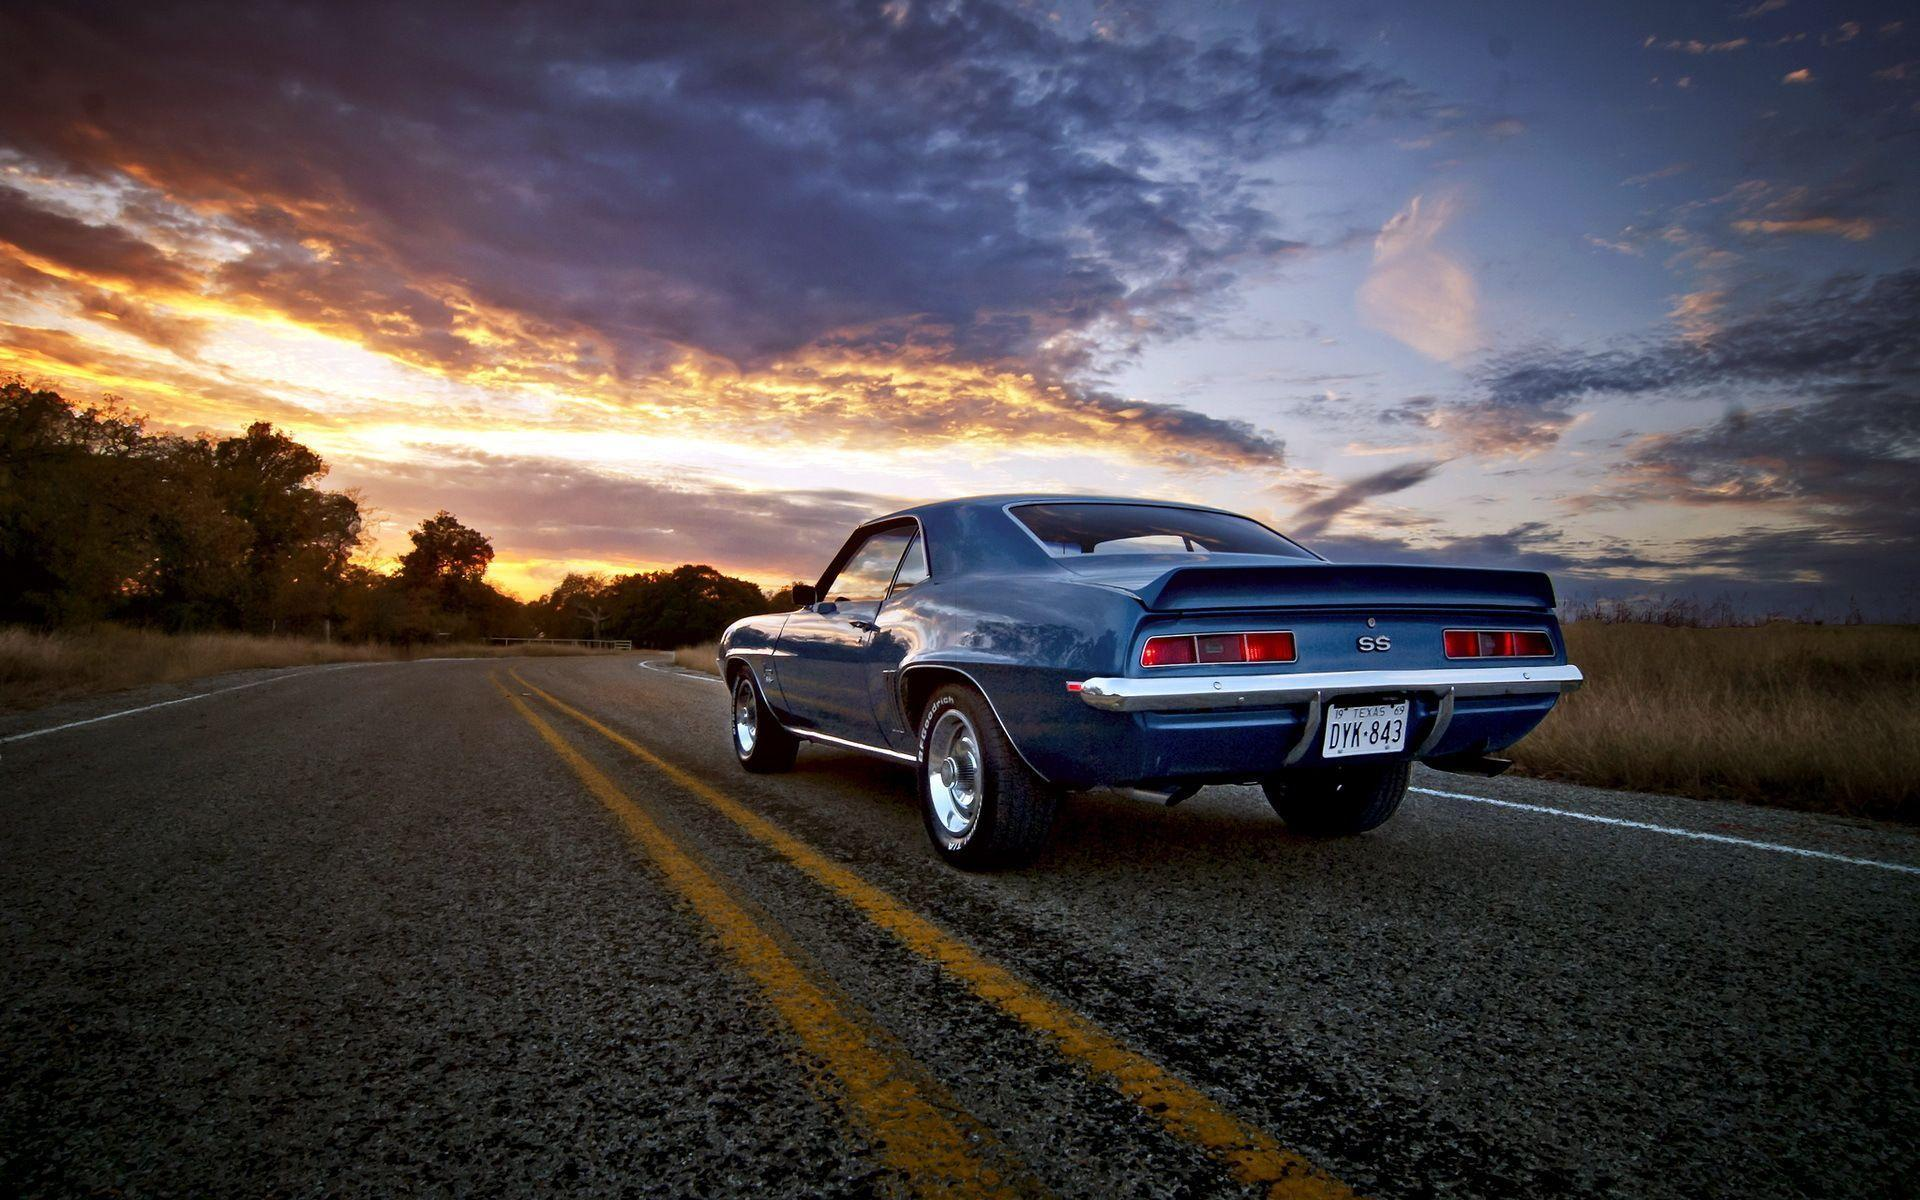 21 Camaro SS Wallpapers   Top Free 21 Camaro SS Backgrounds ...